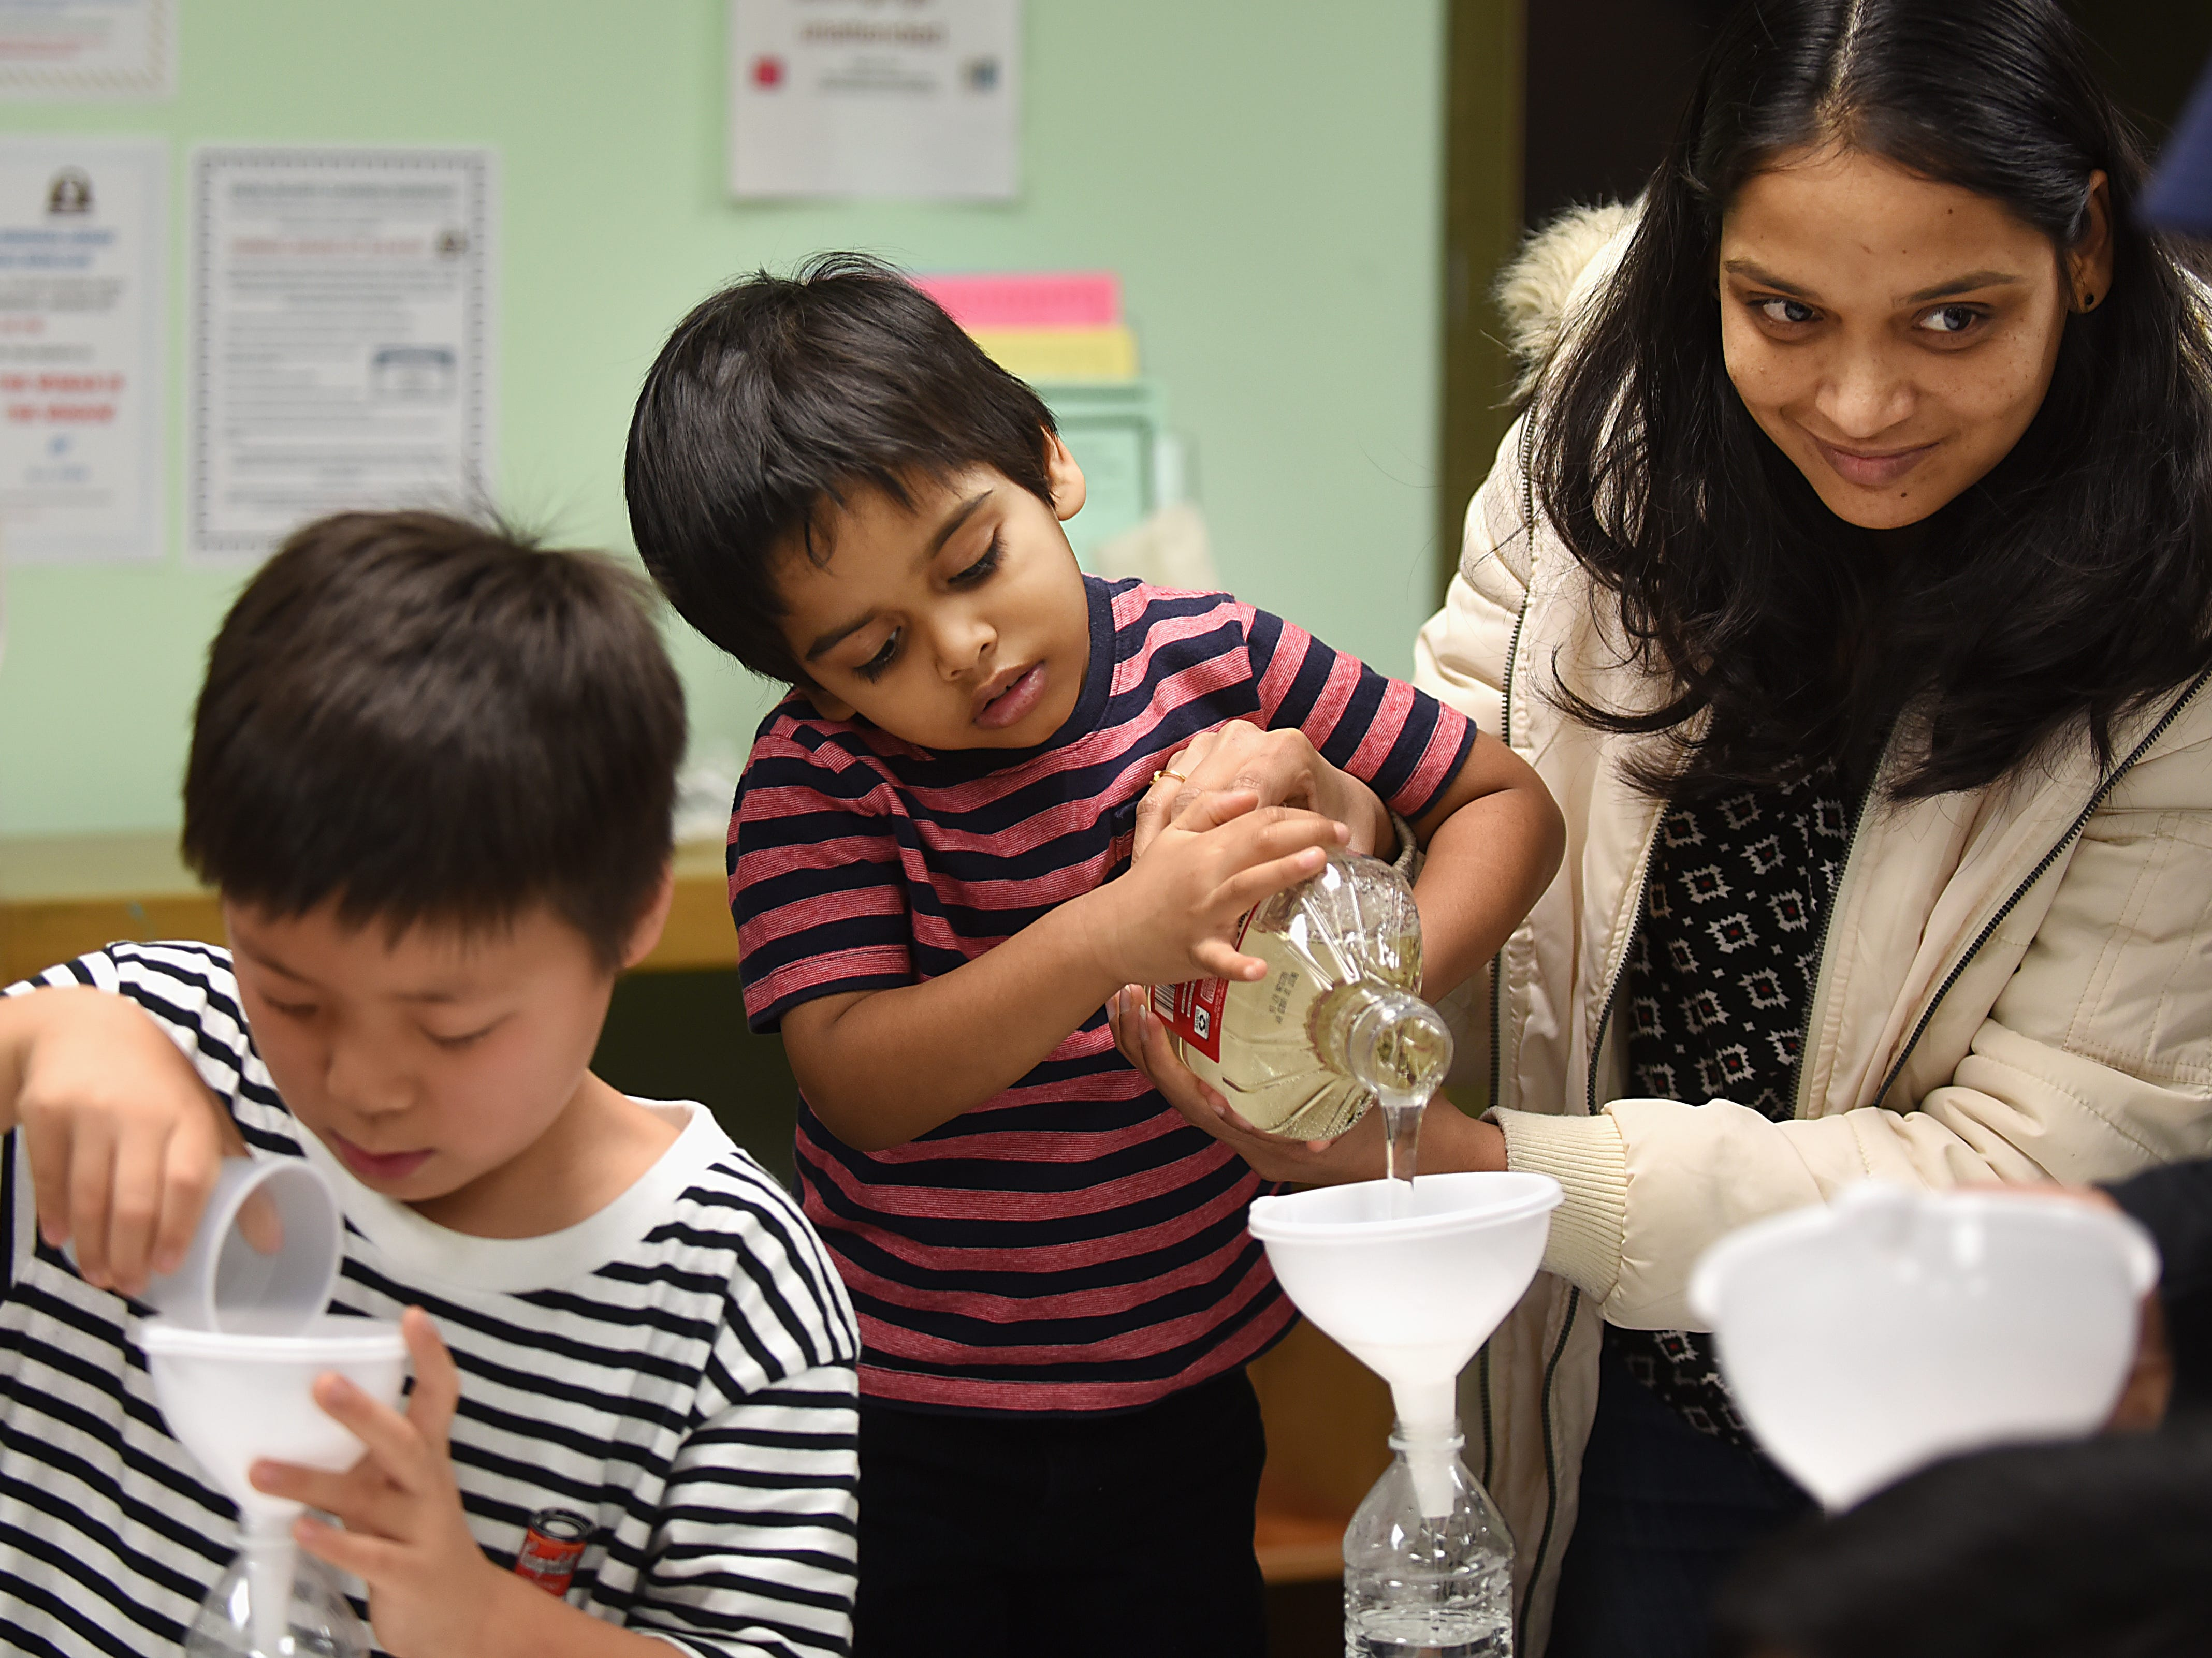 Children make a snowstorm in a bottle as part of the STEM Saturday series at East Rutherford Memorial Library on Saturday January 12, 2019. (From left) Dasel Paljor, 7, Advik Medibelly, 3 and Soumya Medibelly.